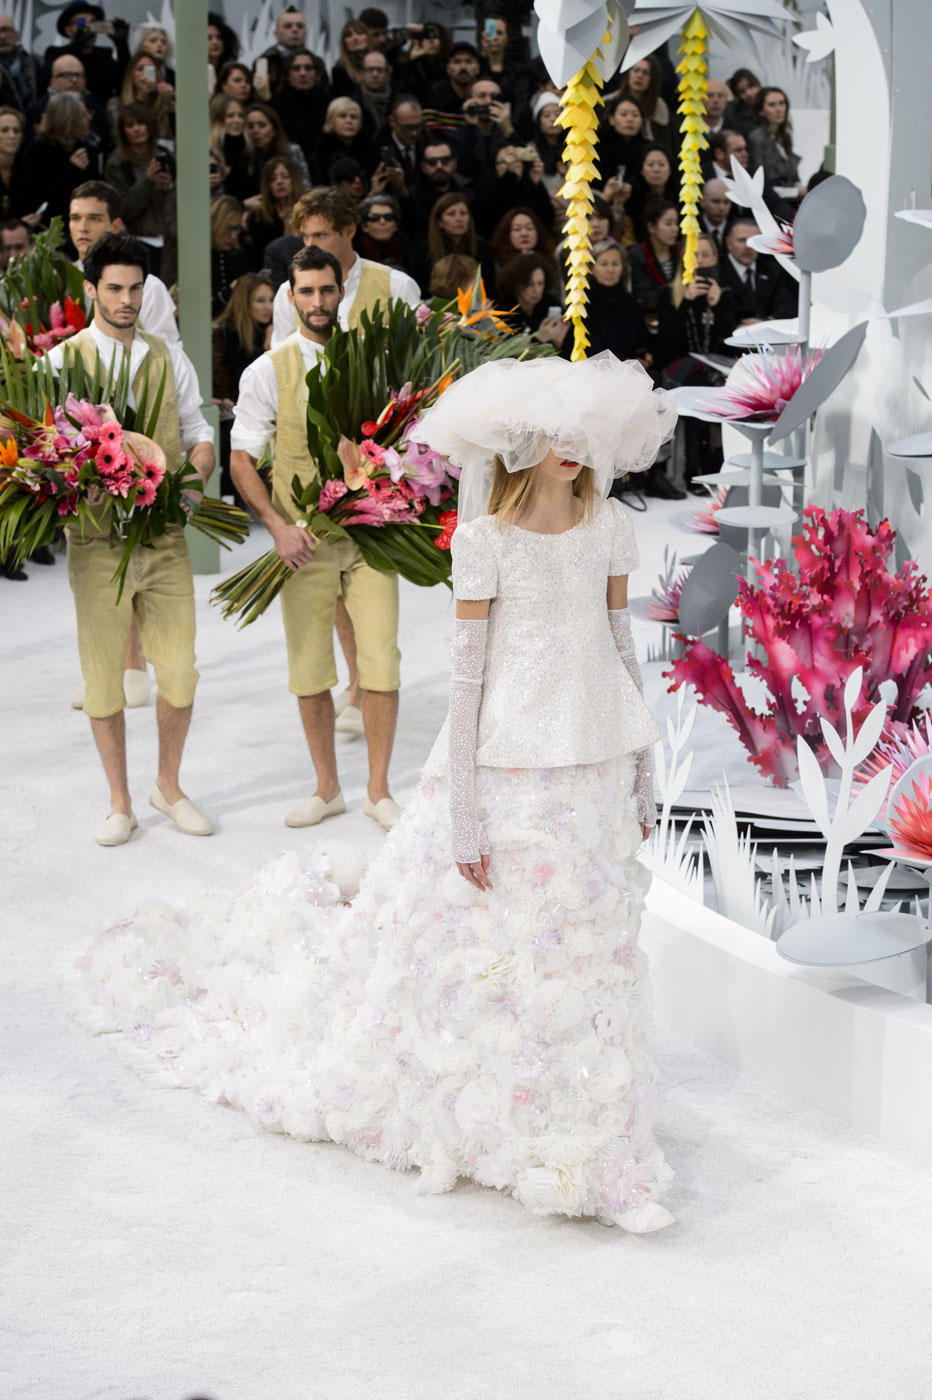 Chanel-fashion-runway-show-haute-couture-paris-spring-summer-2015-the-impression-154